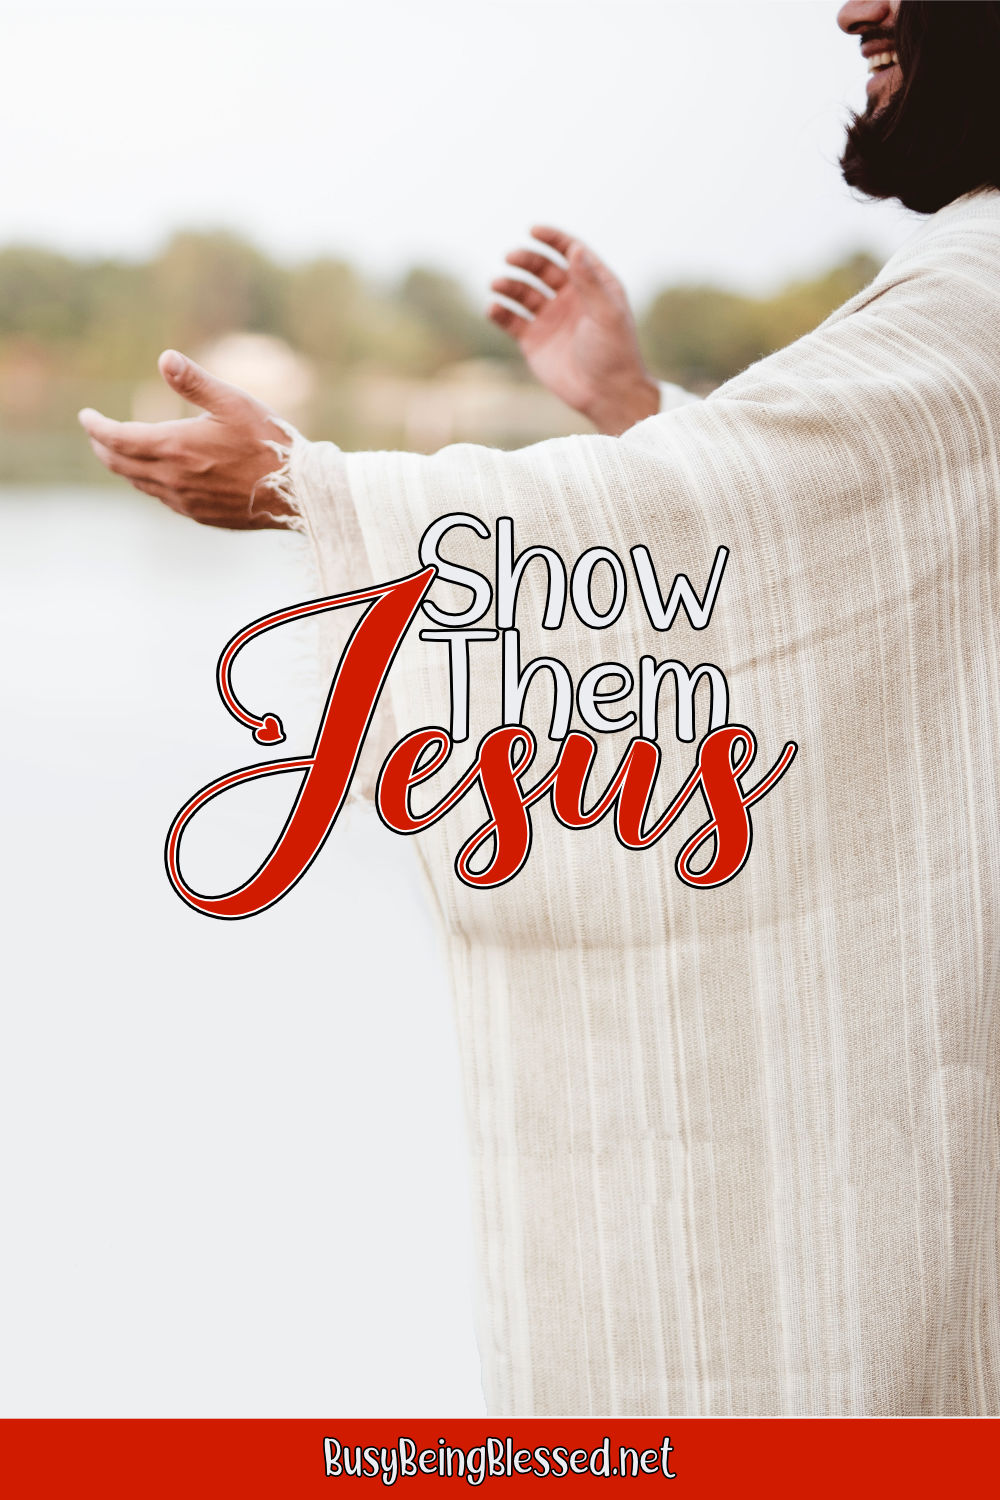 Show Them Jesus, In Isaiah we read that the Messiah (Jesus Christ) was led like a lamb to the slaughter and that He was oppressed and afflicted yet did not open His mouth.